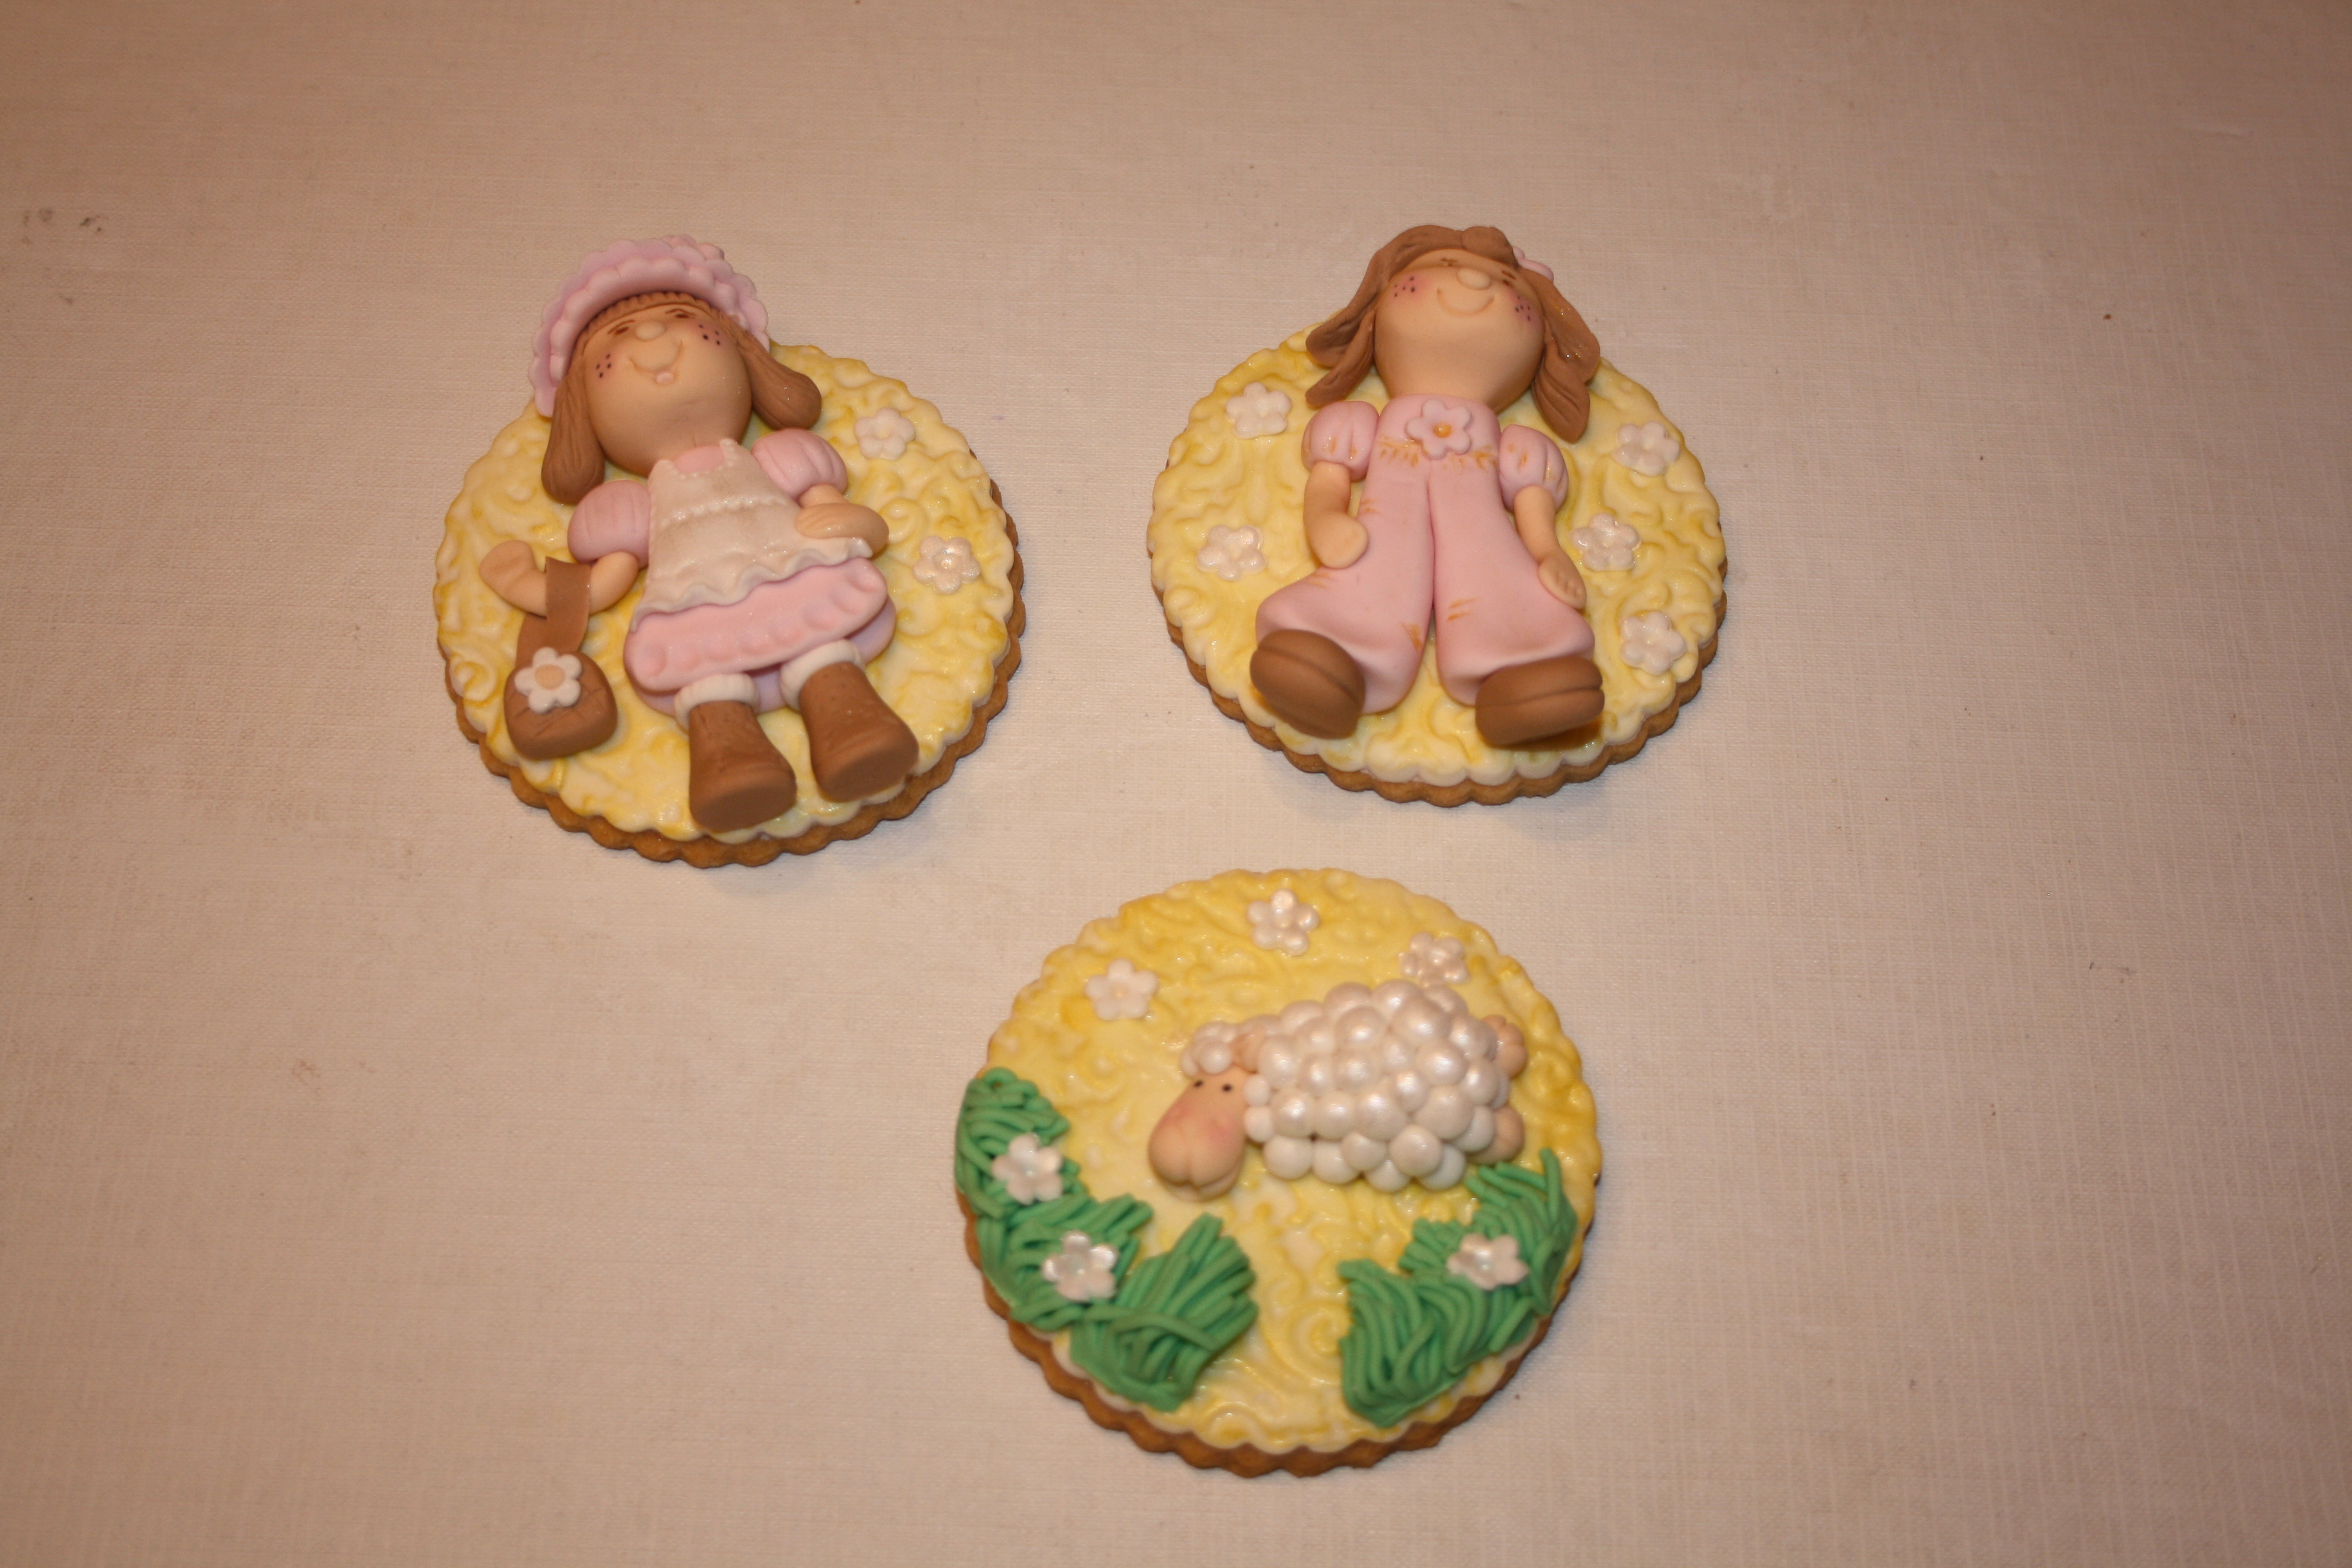 curso-de-galletones-estilo-country-con-isabel-galletas-6